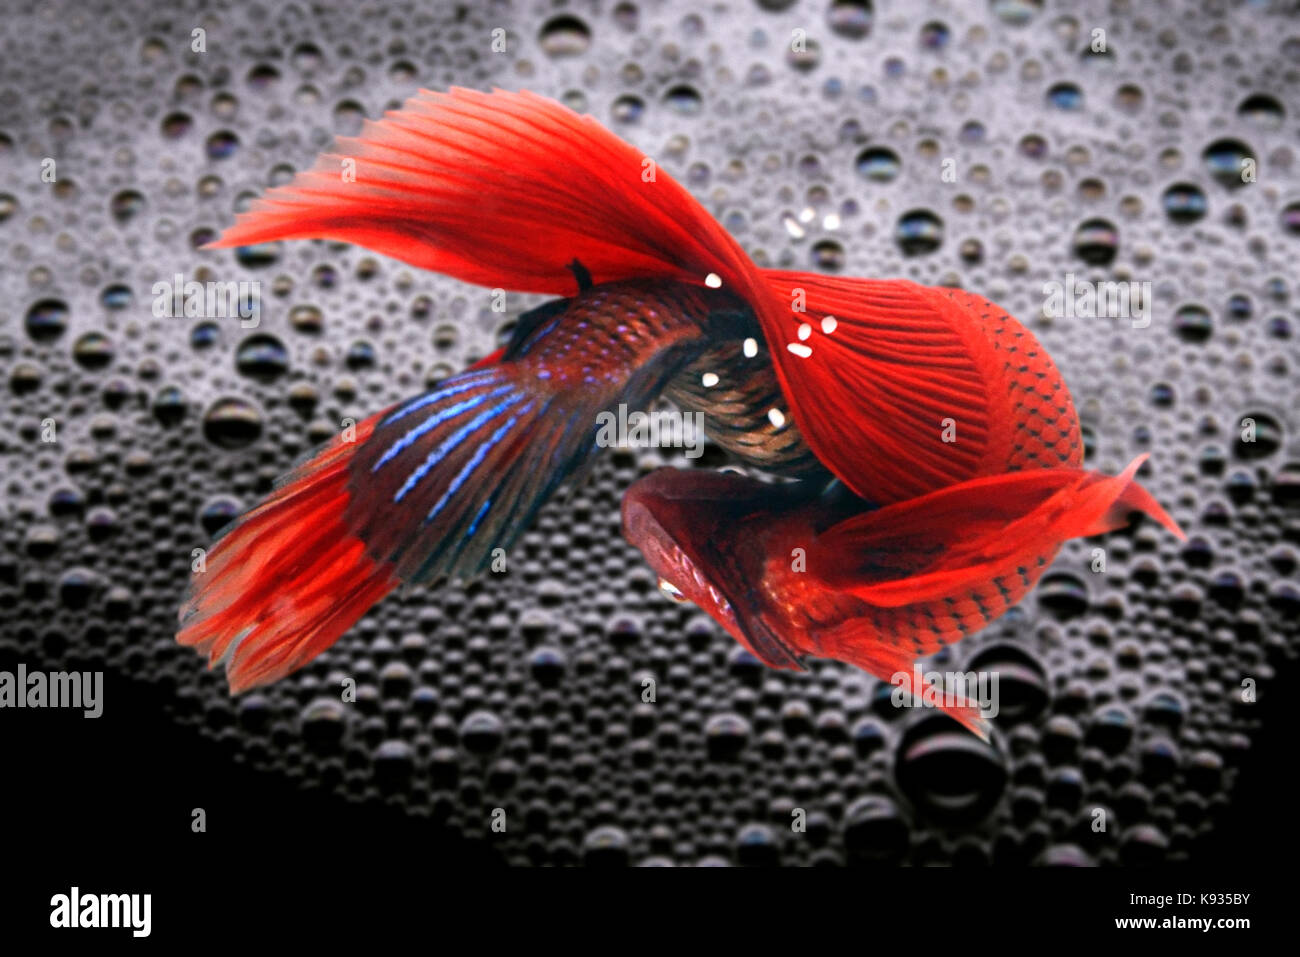 Siamese fighting fish, Betta splendens. Lower view of the couple breeding under the bubble nest at the water surface. Stock Photo